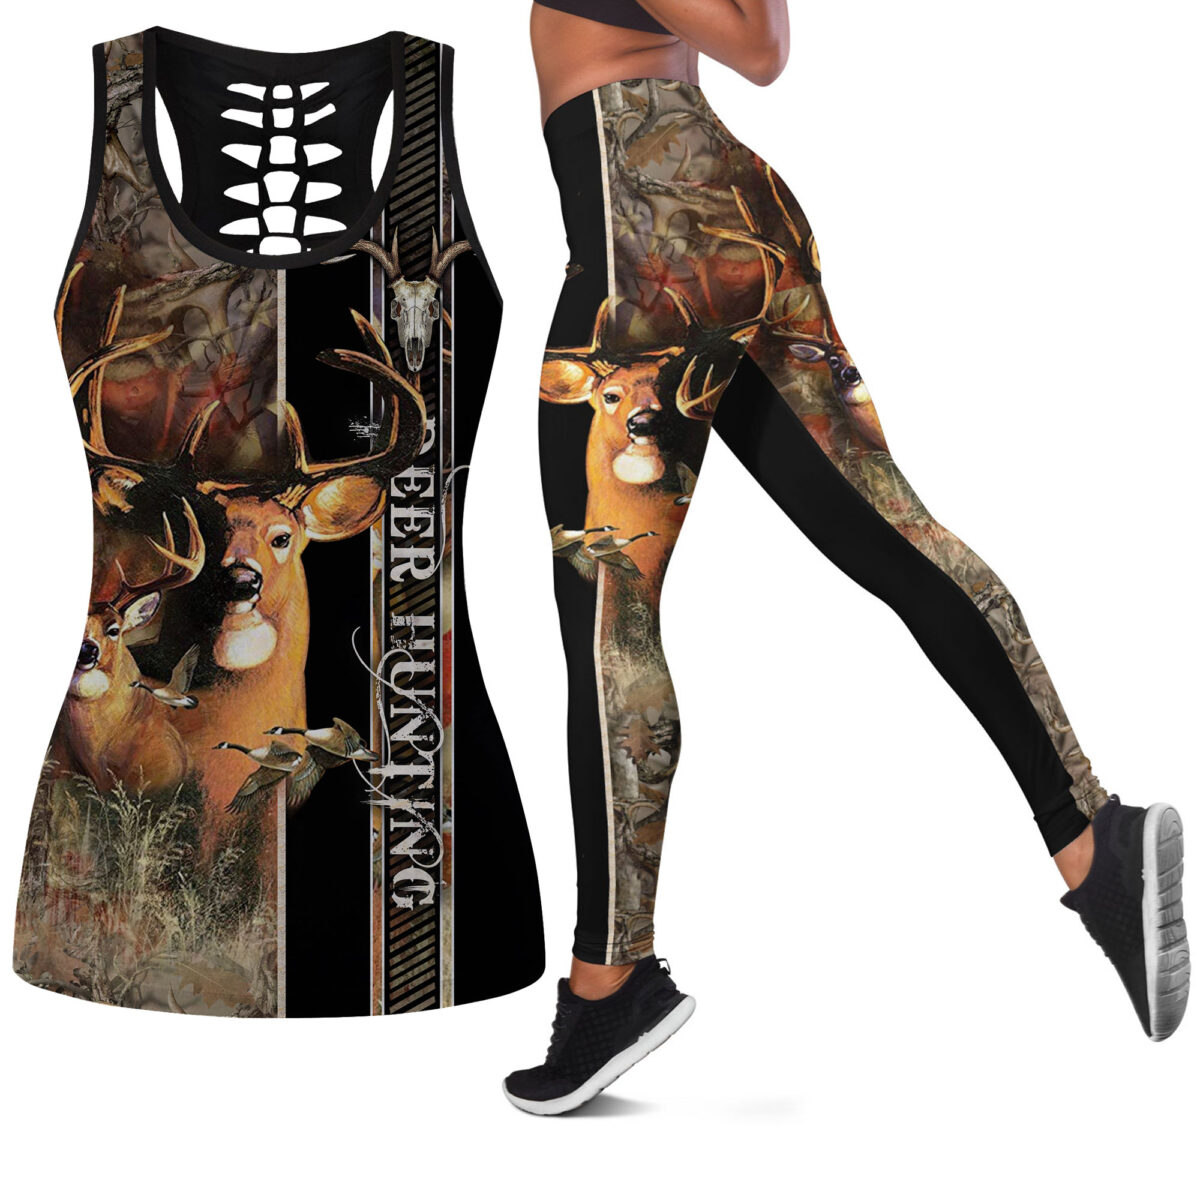 Deer Hunting Leggings and Hollow out Tank Top